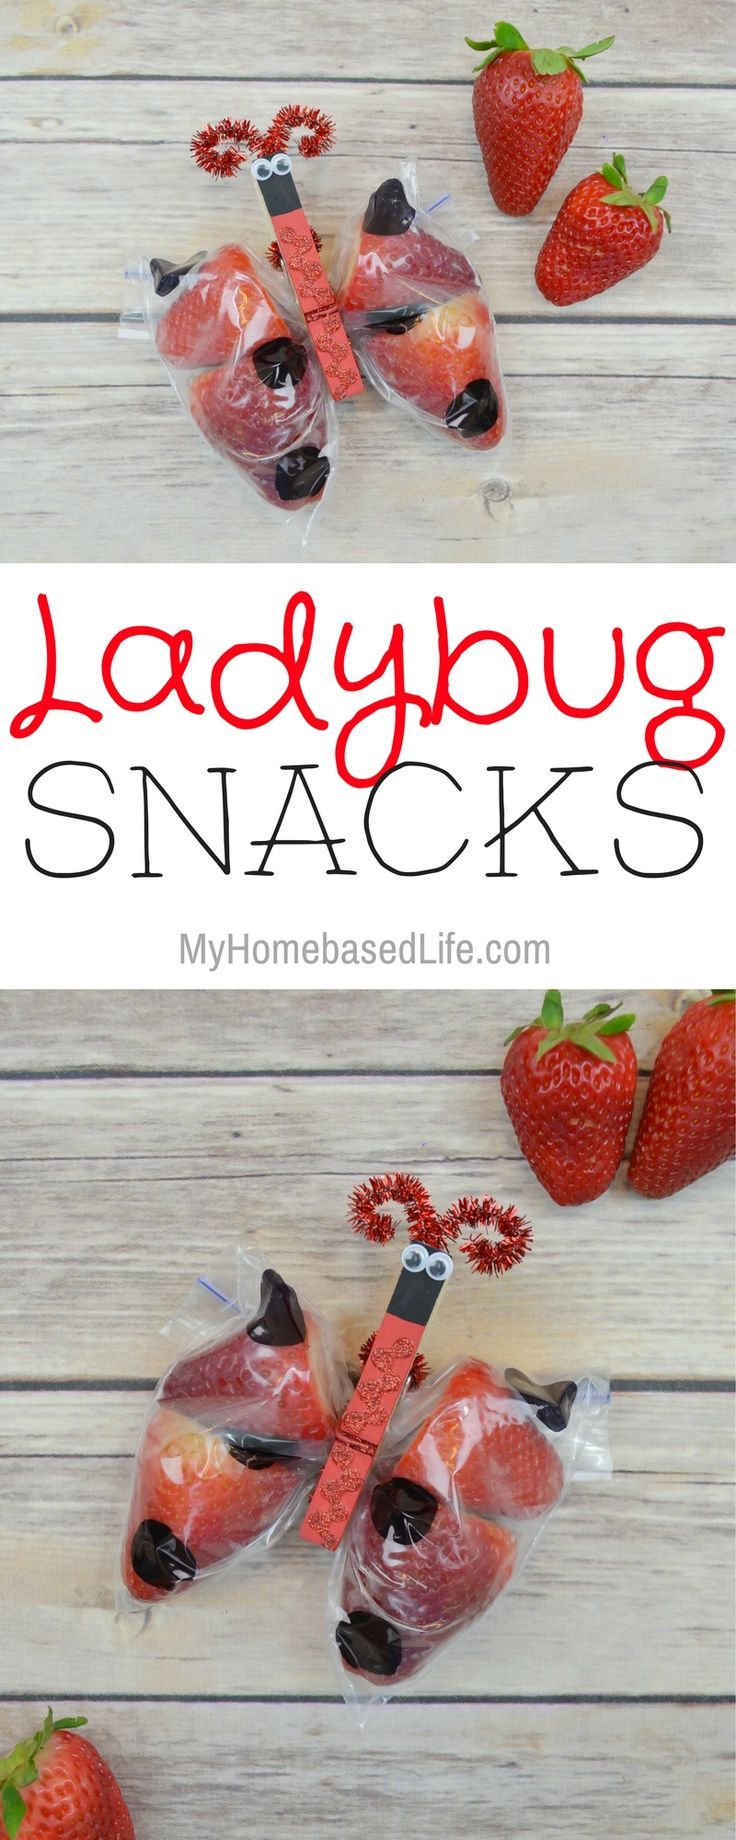 These ladybug snacks for kids is a perfect treat that is healthier